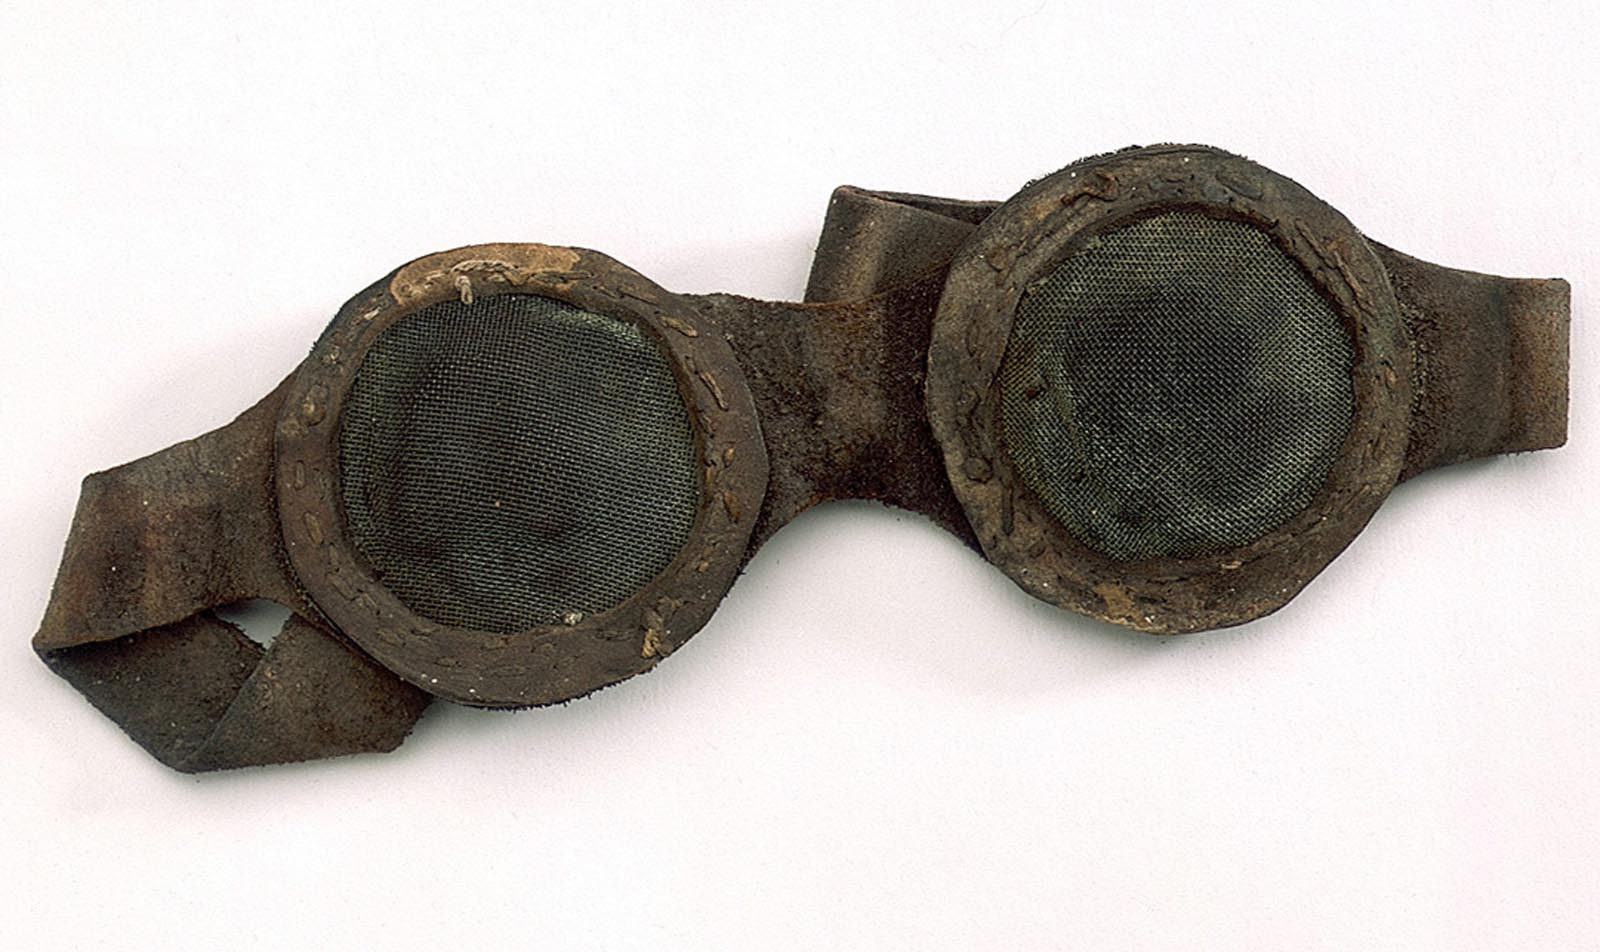 a photo of a pair of old goggles with wire mesh lenses